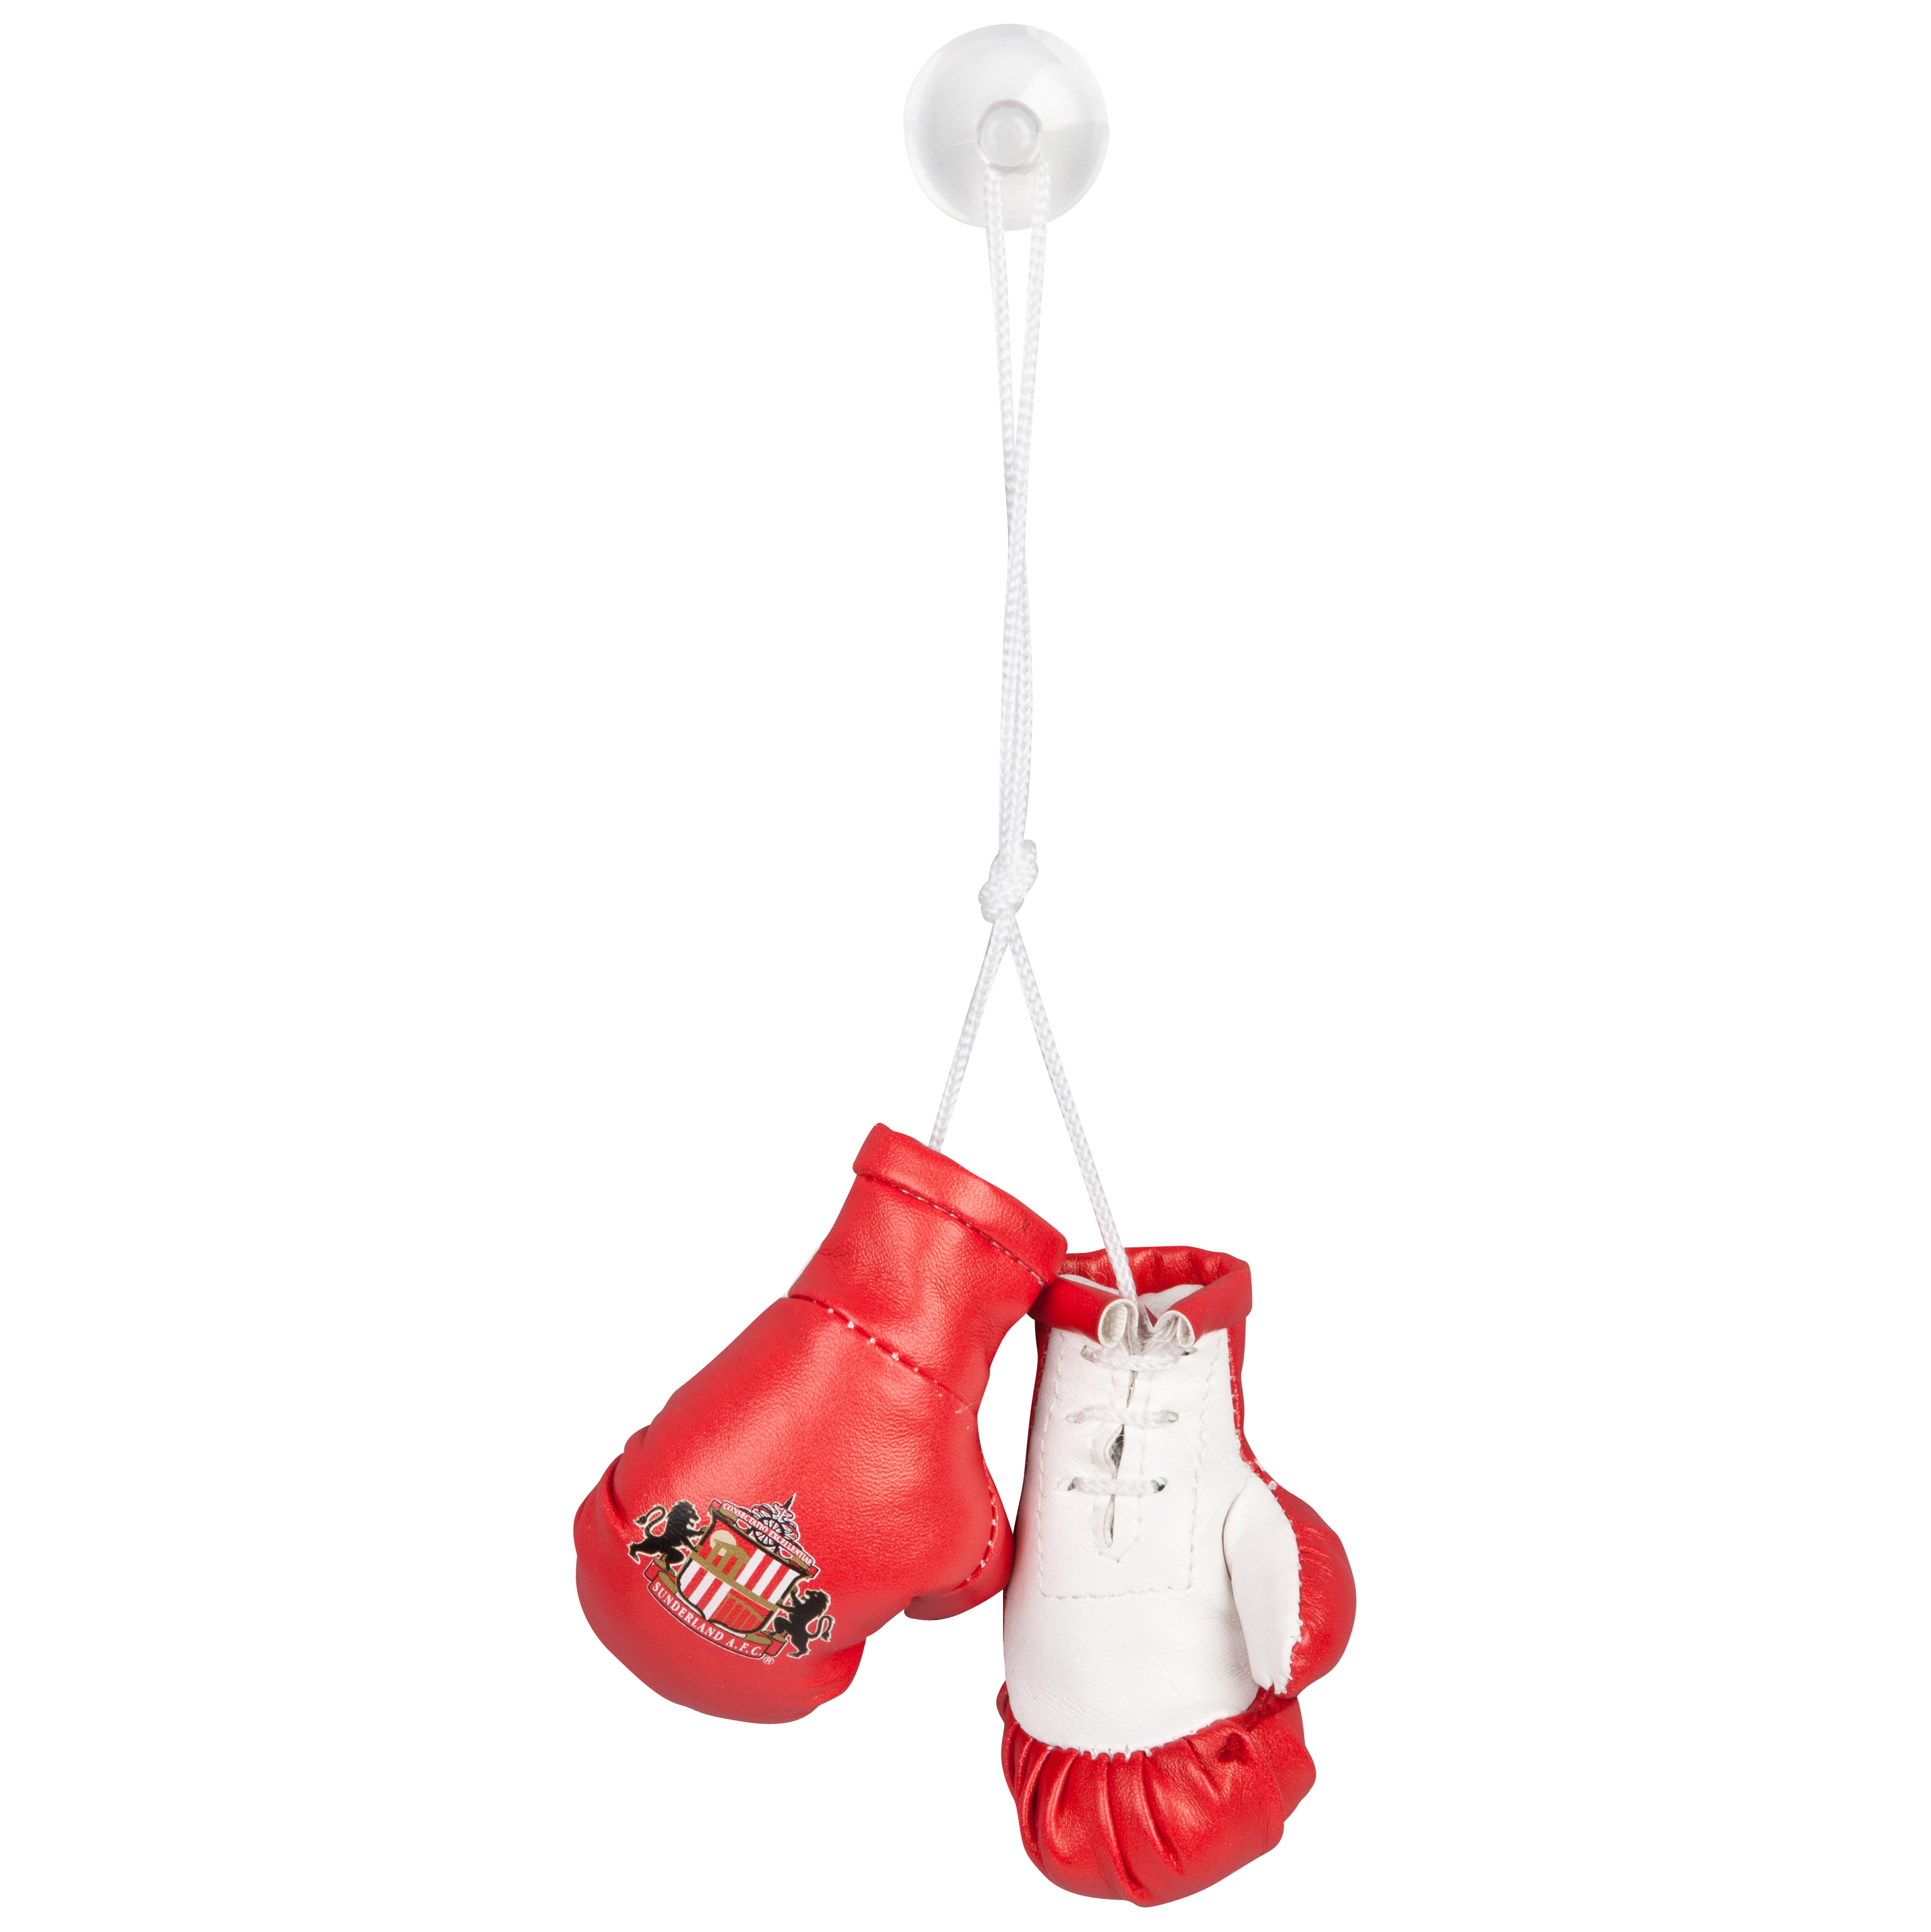 Sunderland Car Boxing Glove - Red/White